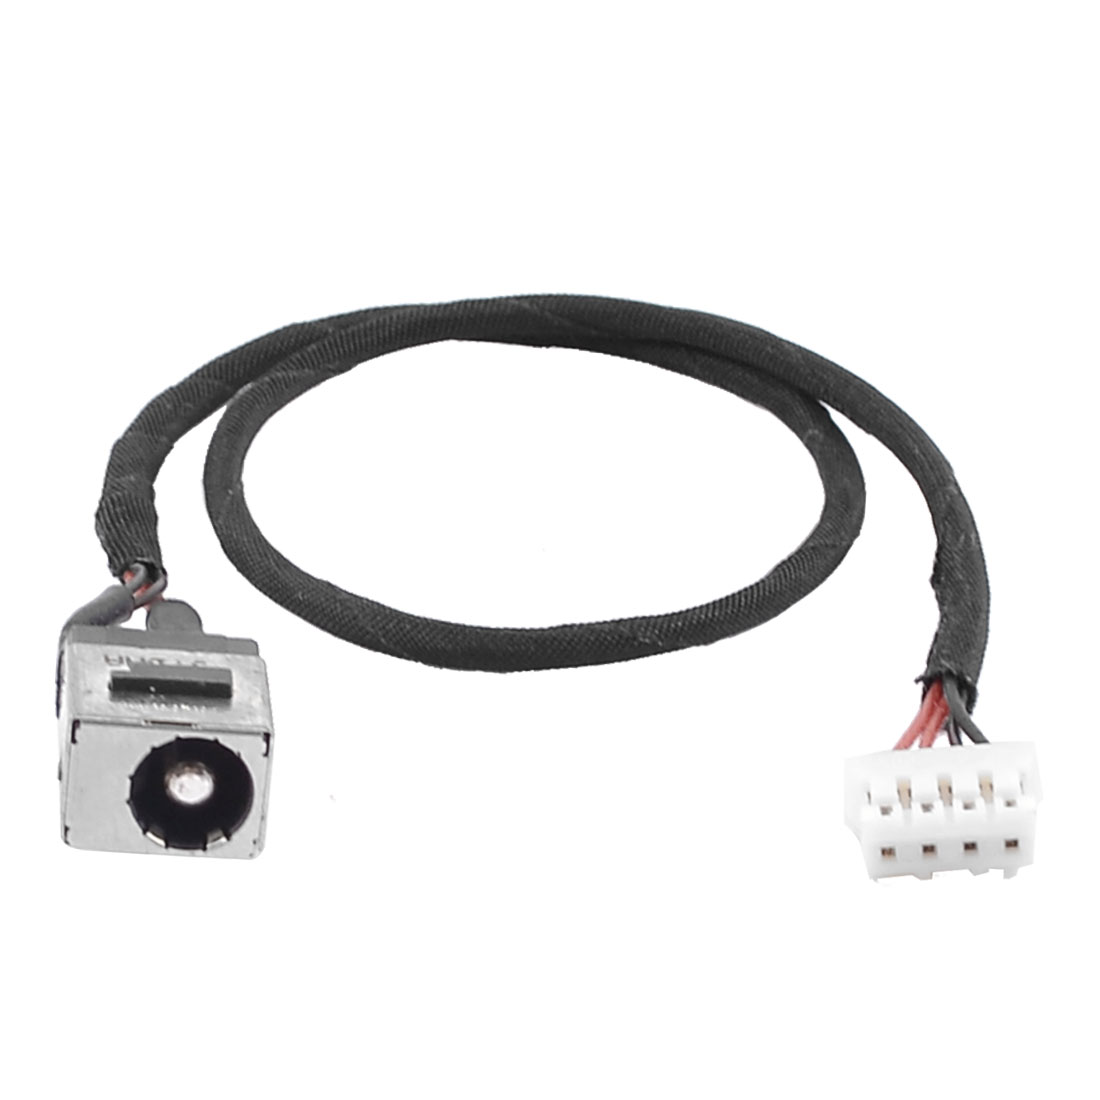 PJ310 2.5mm Center Pin DC Power Jack 4 Pins Cable for Acer